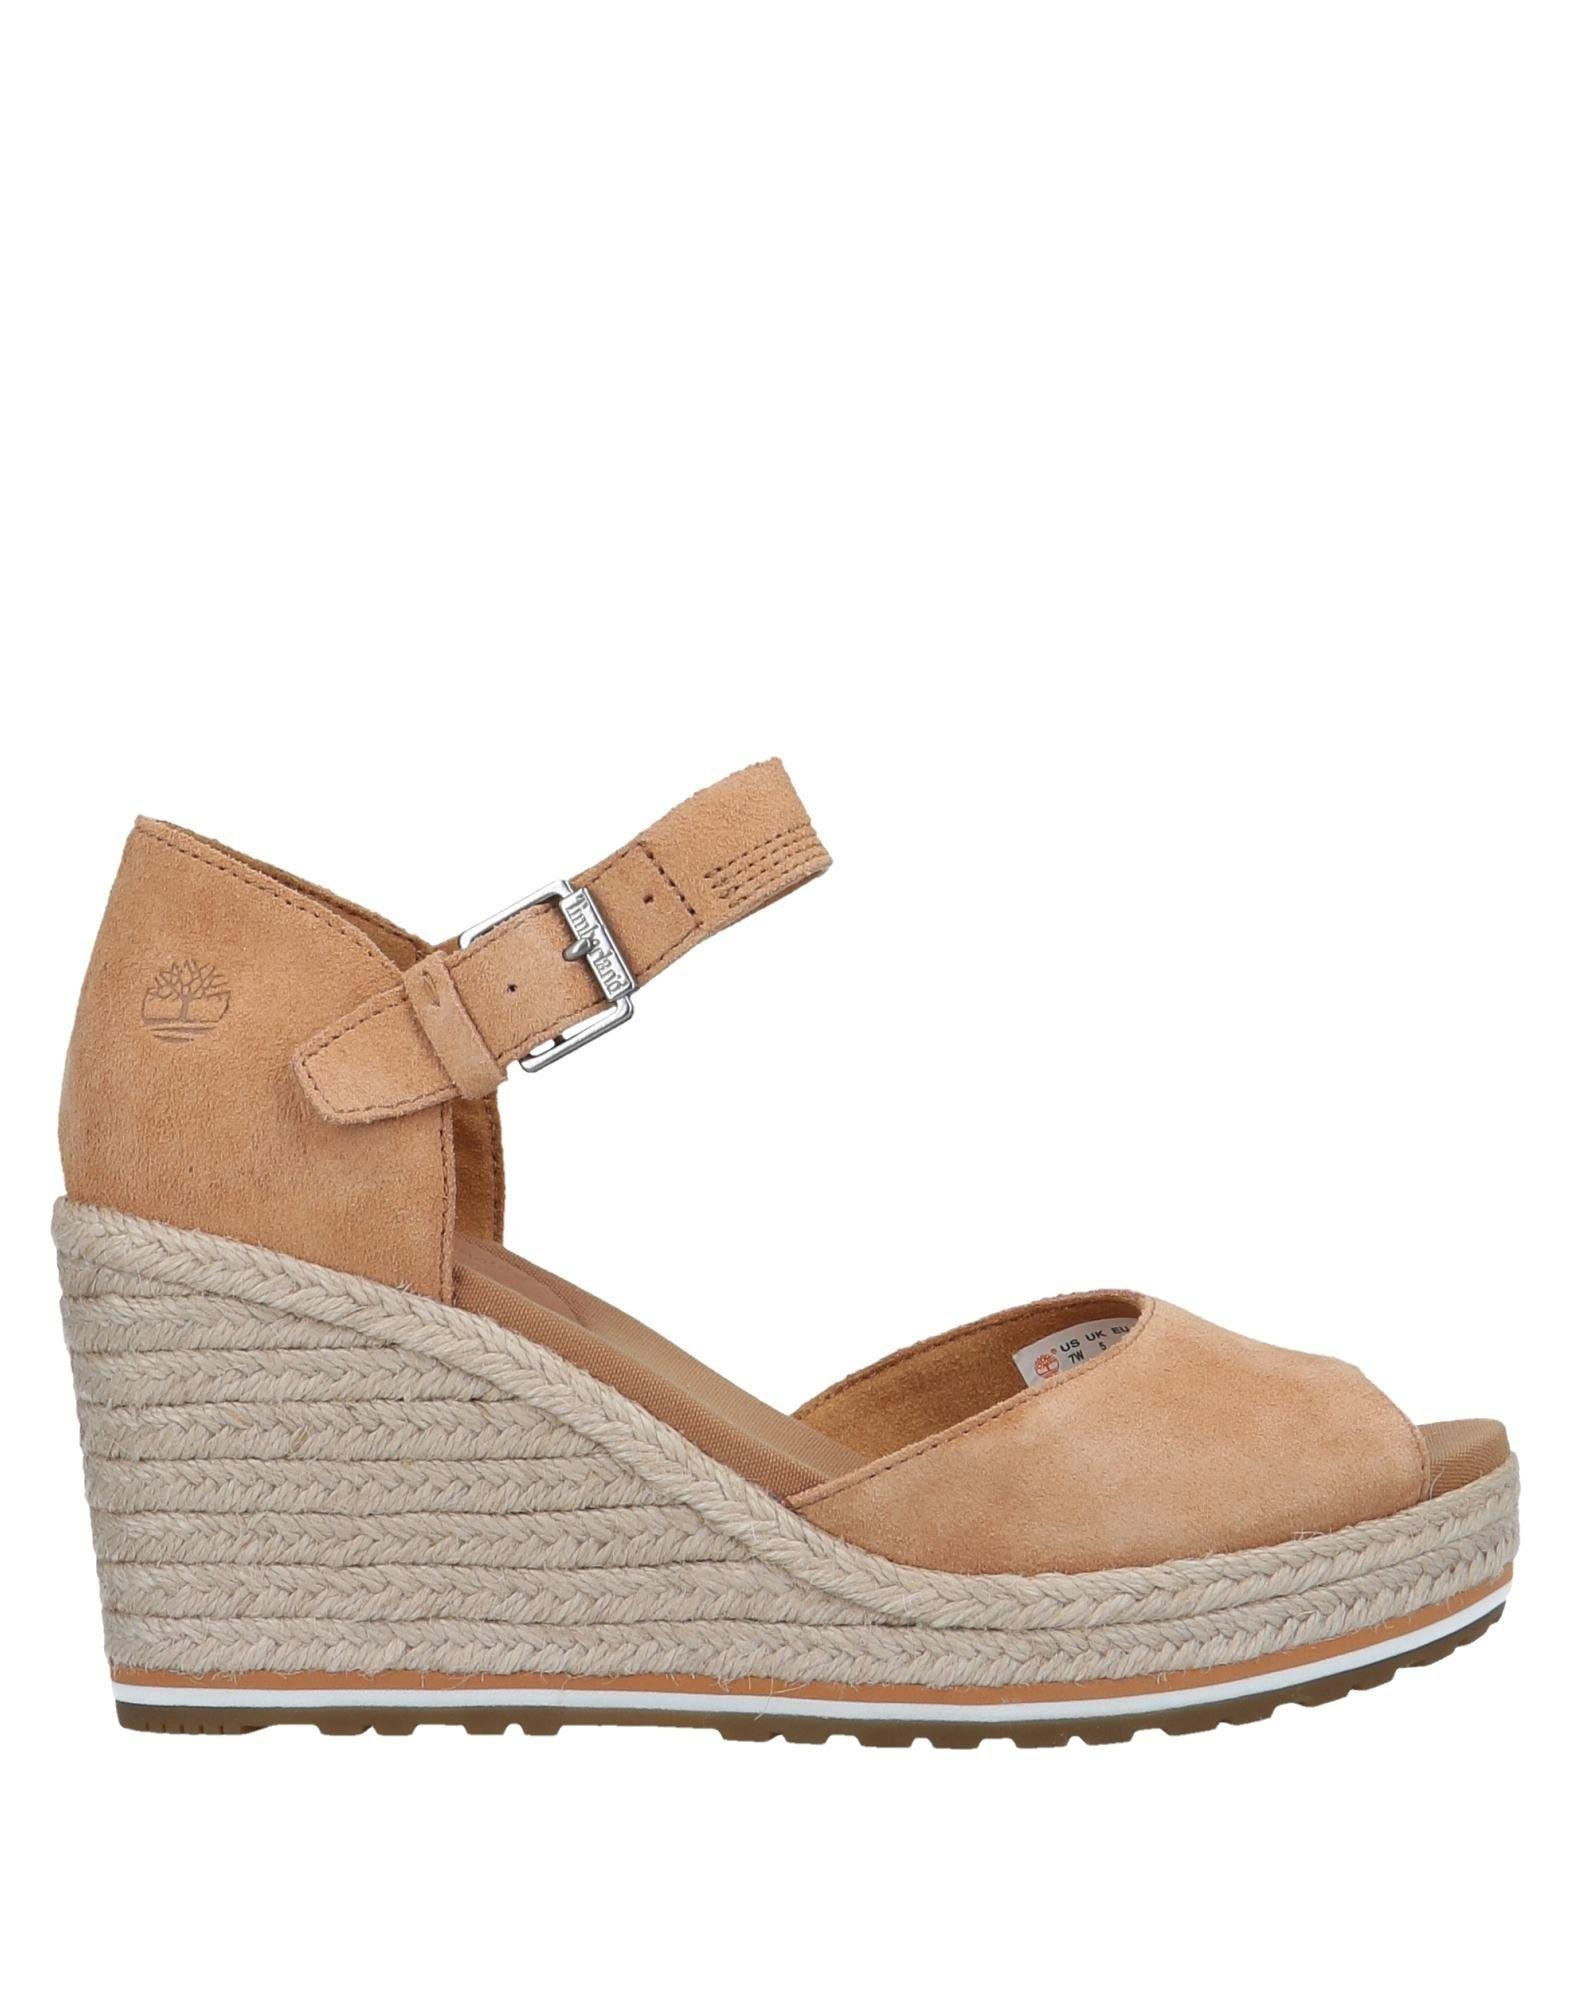 Timberland Sandals in Brown - Lyst e6713db75c0c2